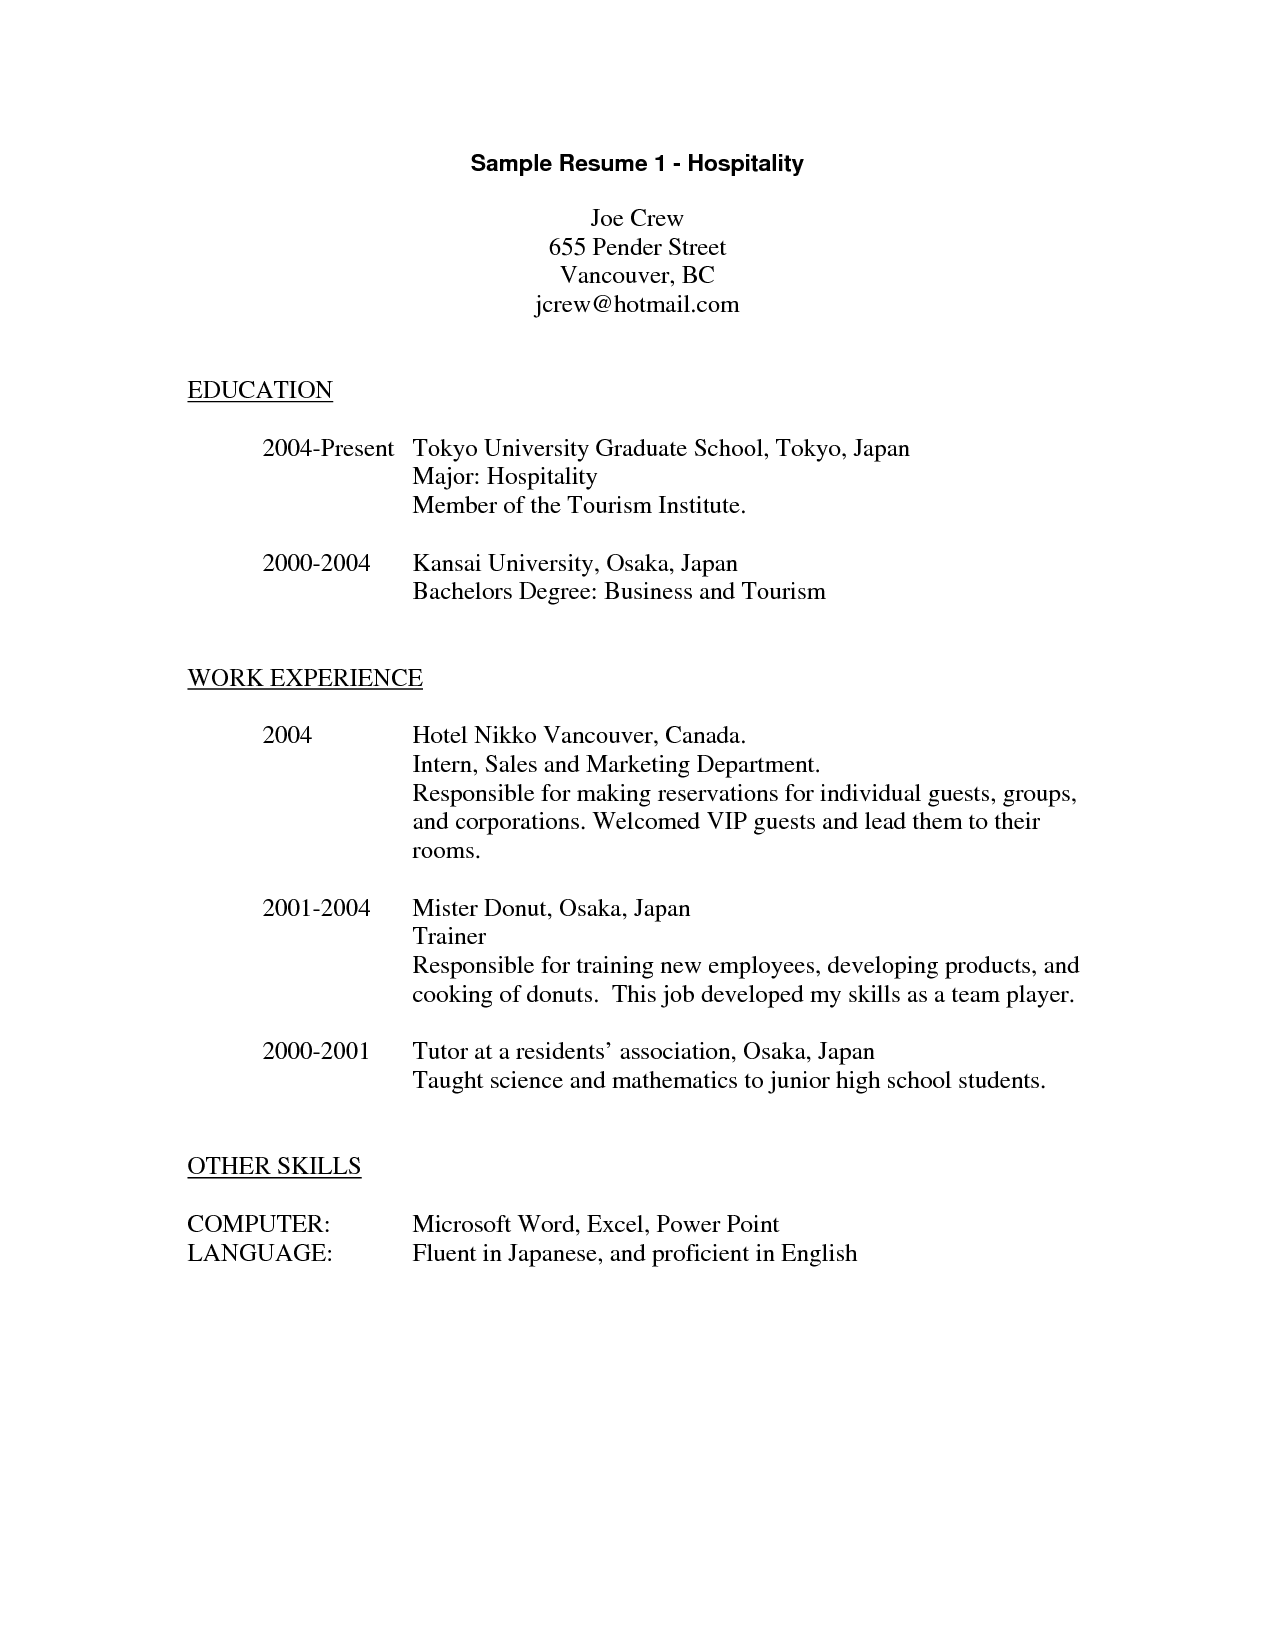 sample resume for hospitality industry jobs